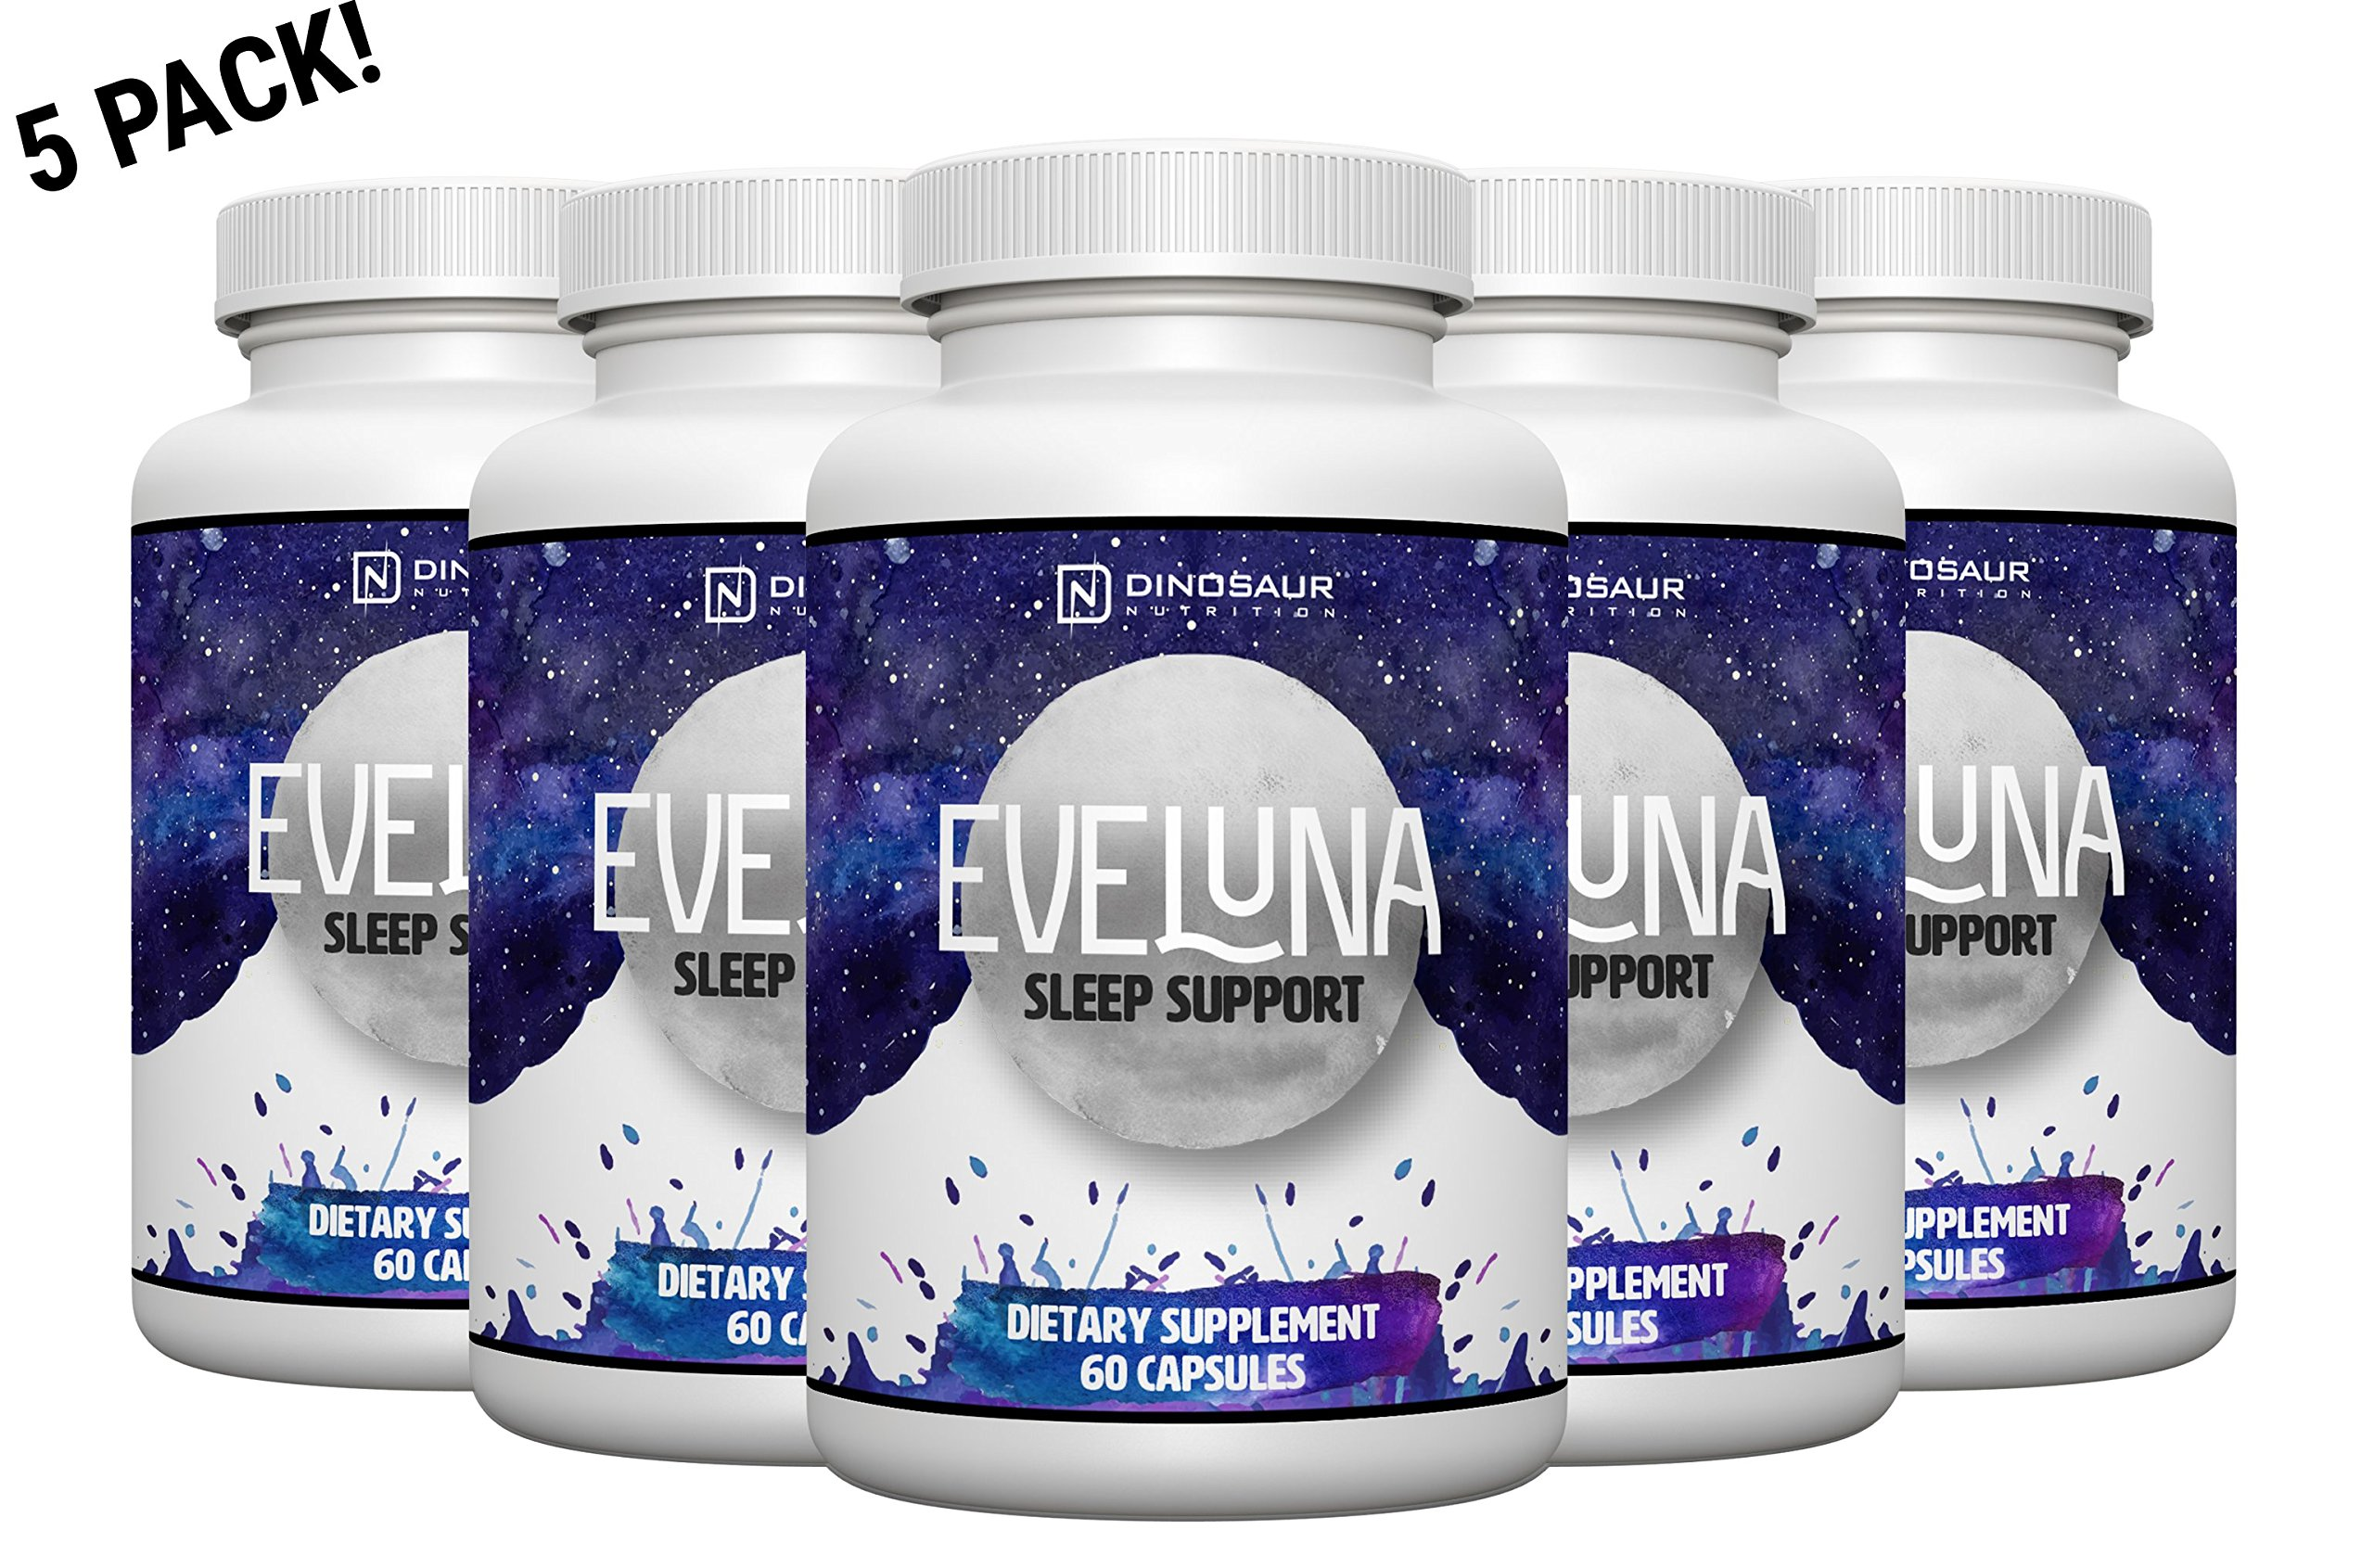 Eveluna - Natural Sleep Aid Supplement with Melatonin, Valerian, Tryptophan, 5-HTP and More - Non-Habit Forming Sleeping Pill Support - Wake Rested And Refreshed - 60 Veggie Capsules (5) by Dinosaur Nutrition (Image #1)